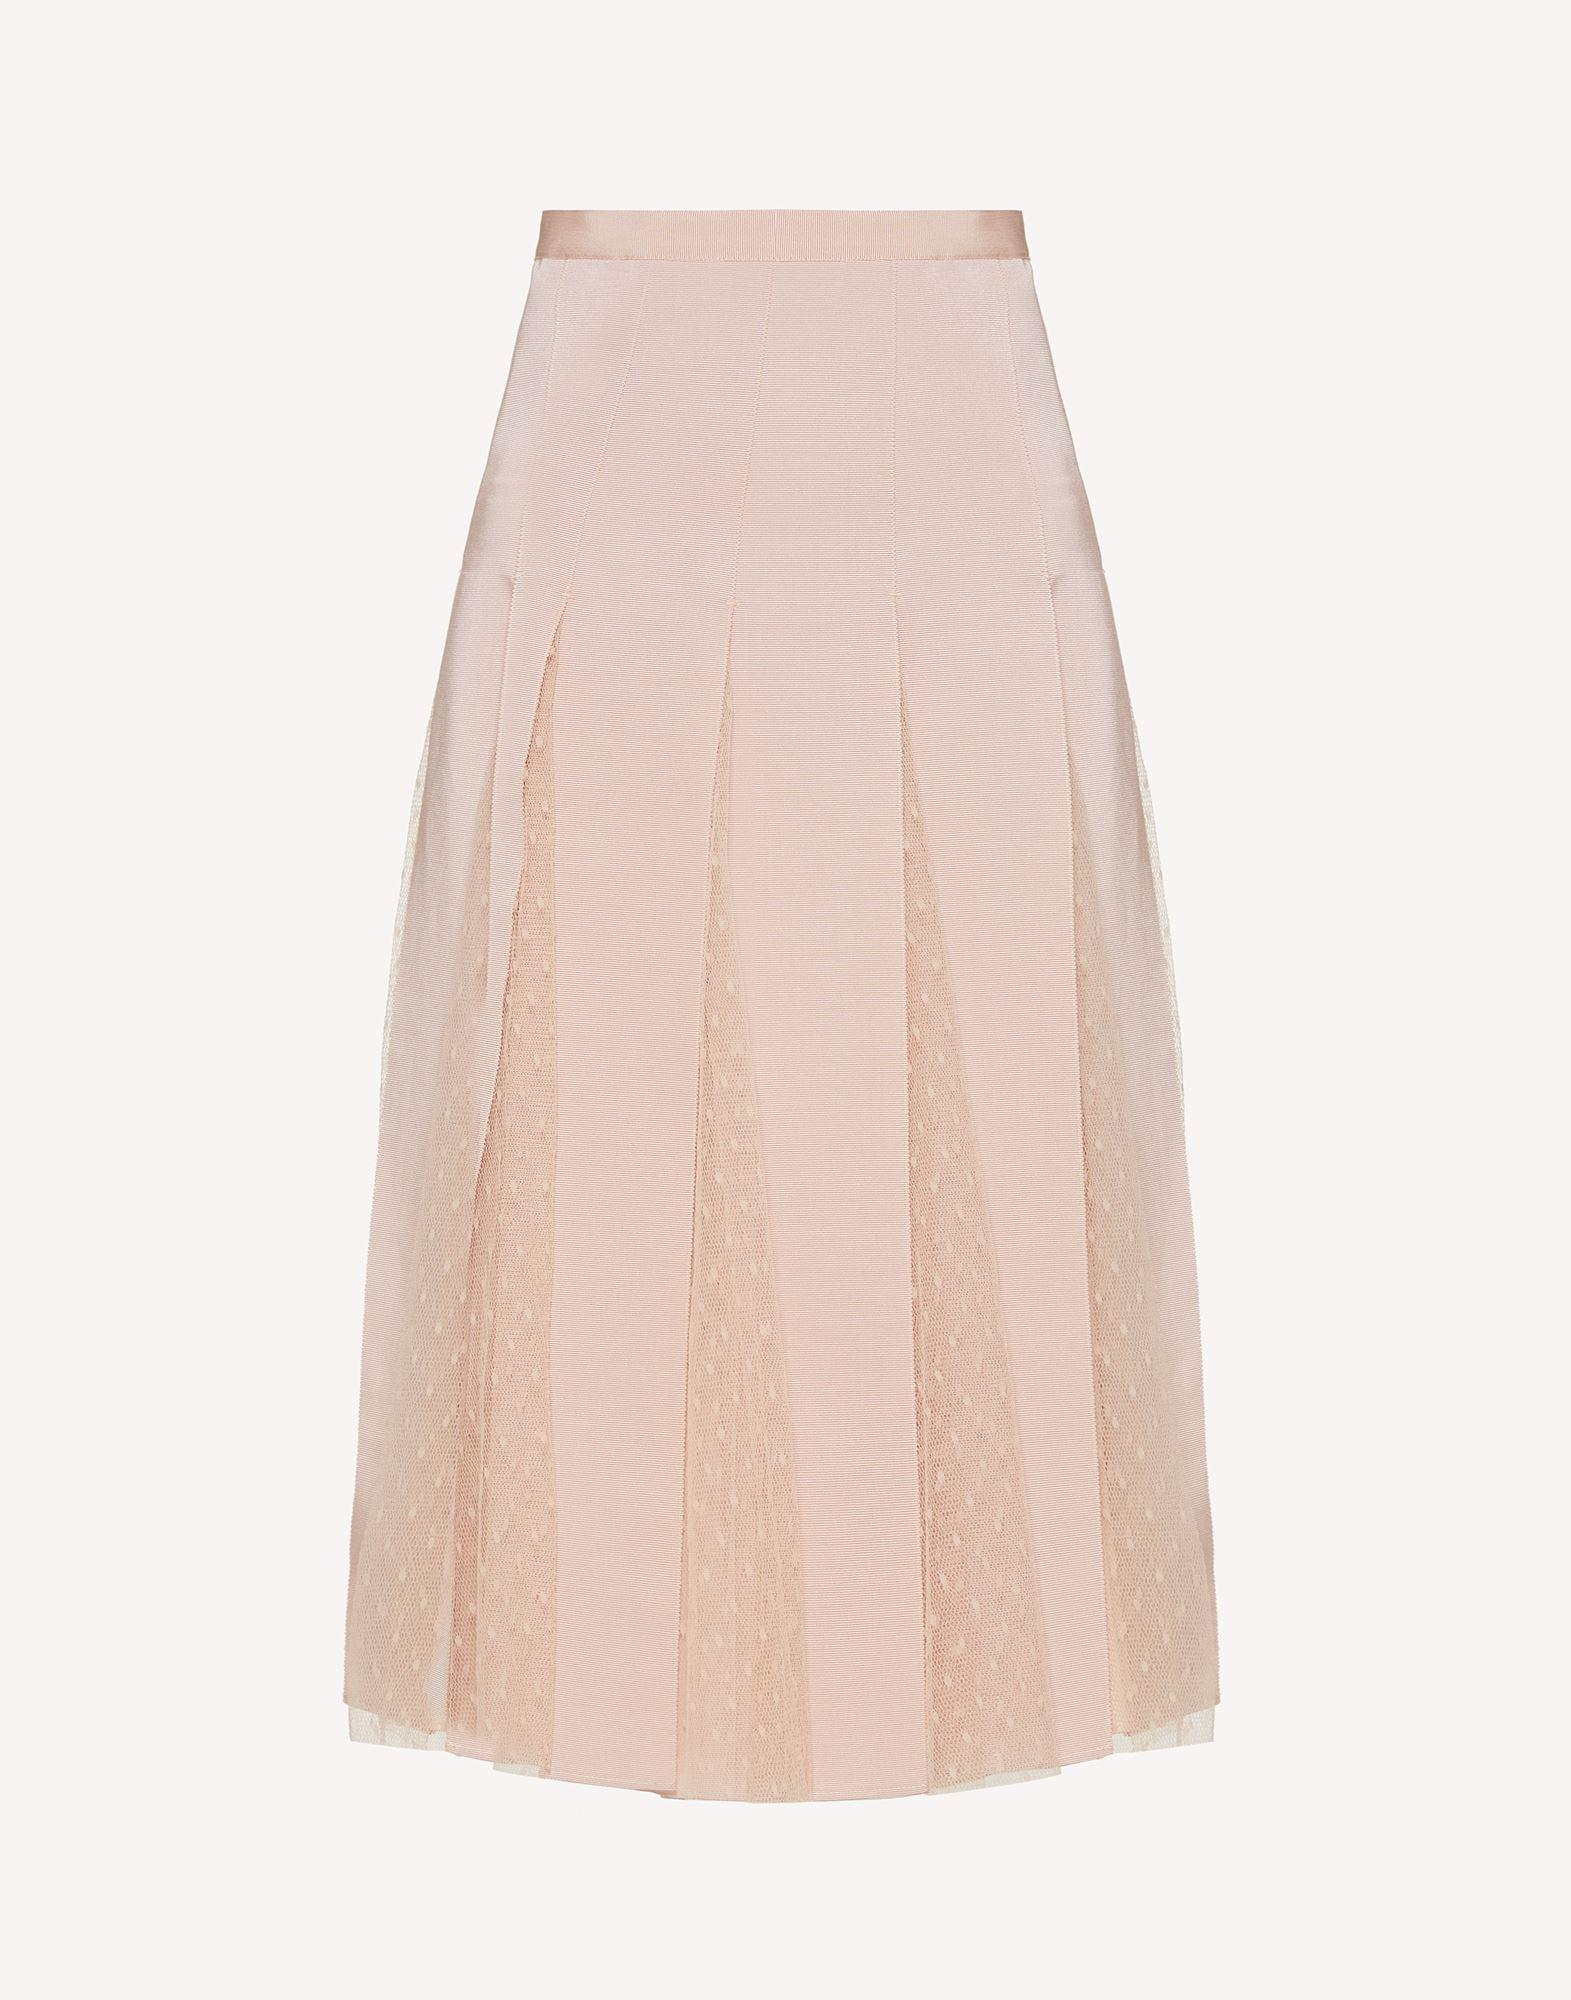 POINT D'ESPRIT TULLE SKIRT WITH GROSGRAIN RIBBONS 4